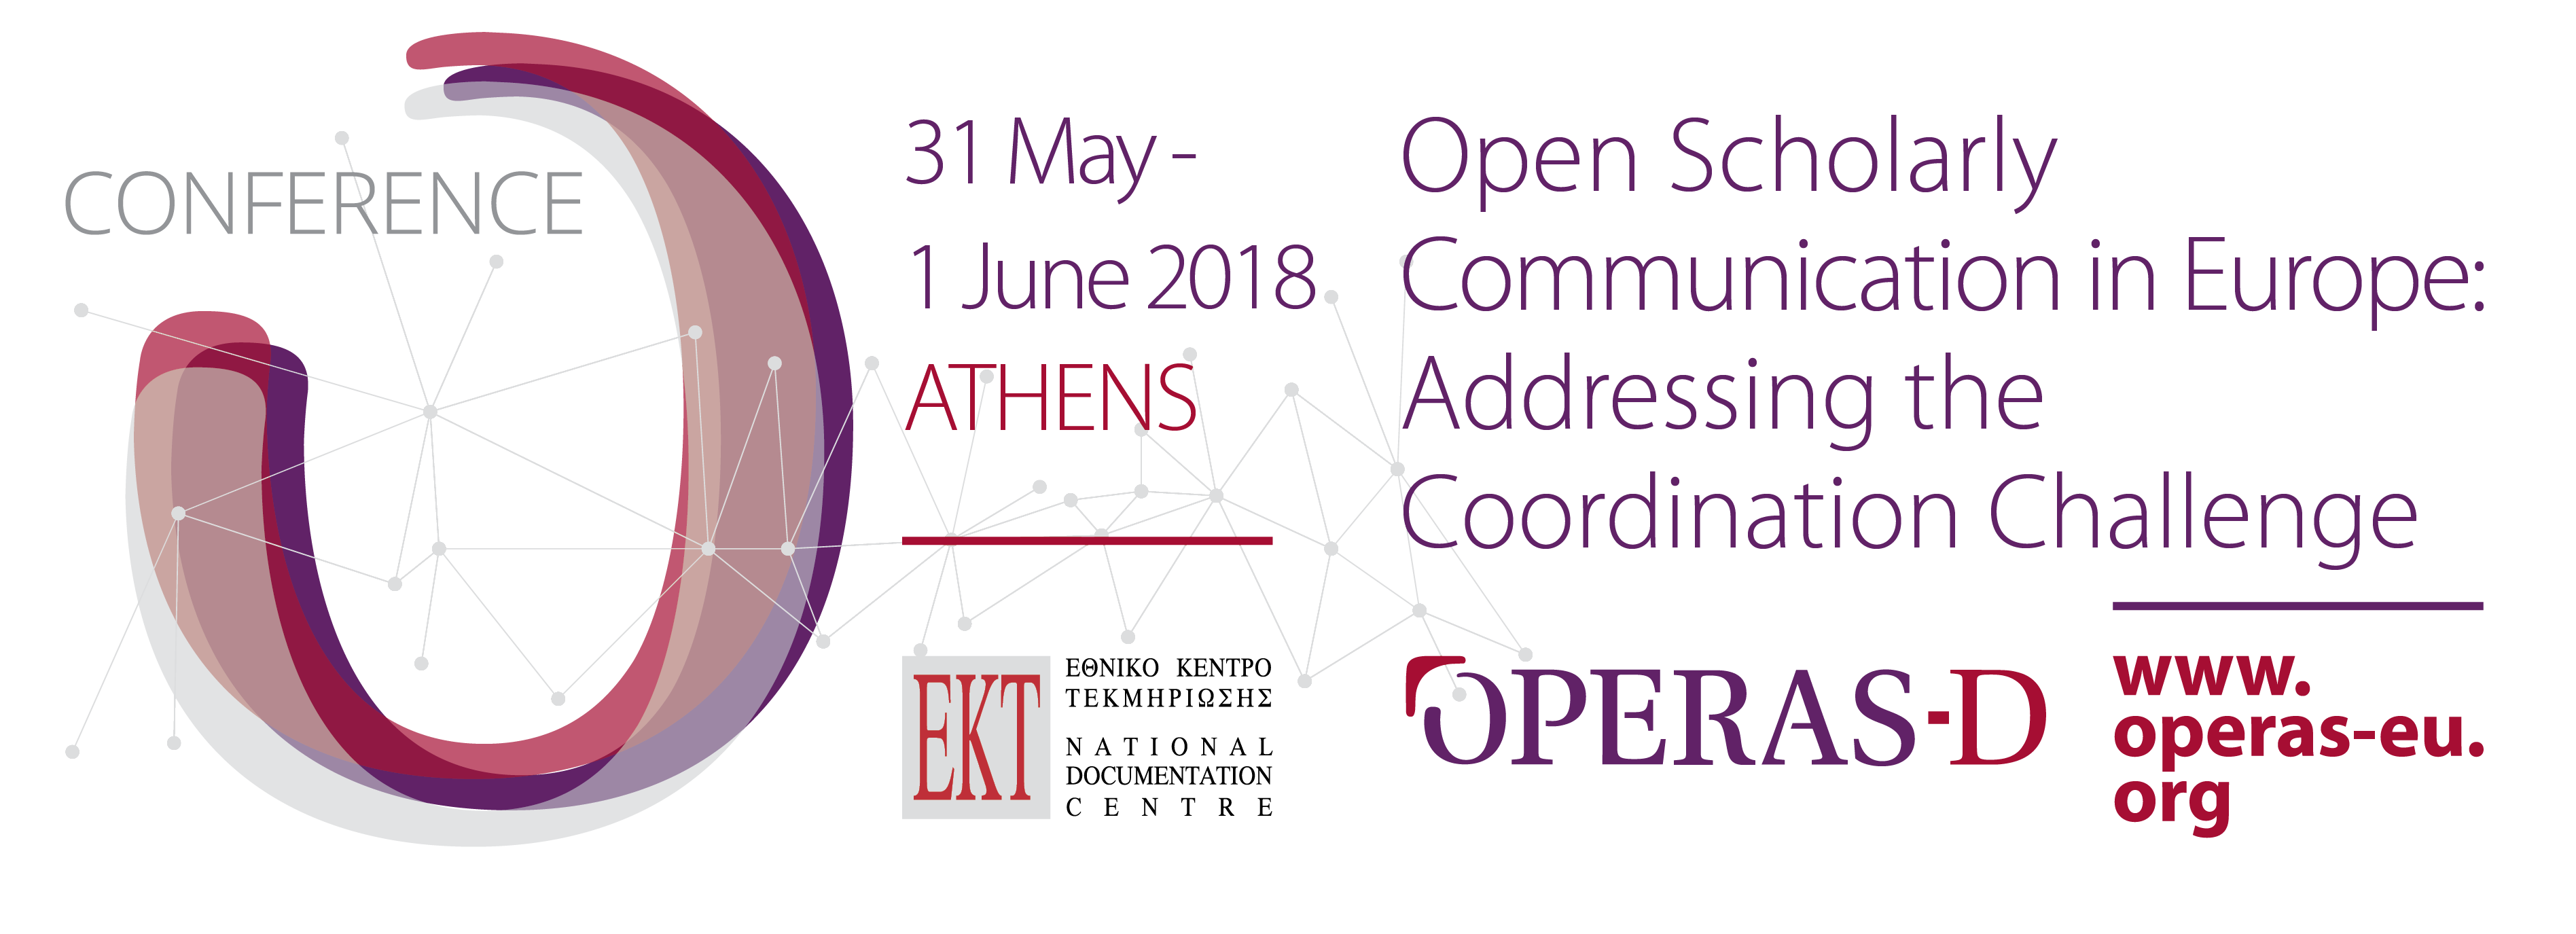 operas conference open scholarly communication in europe